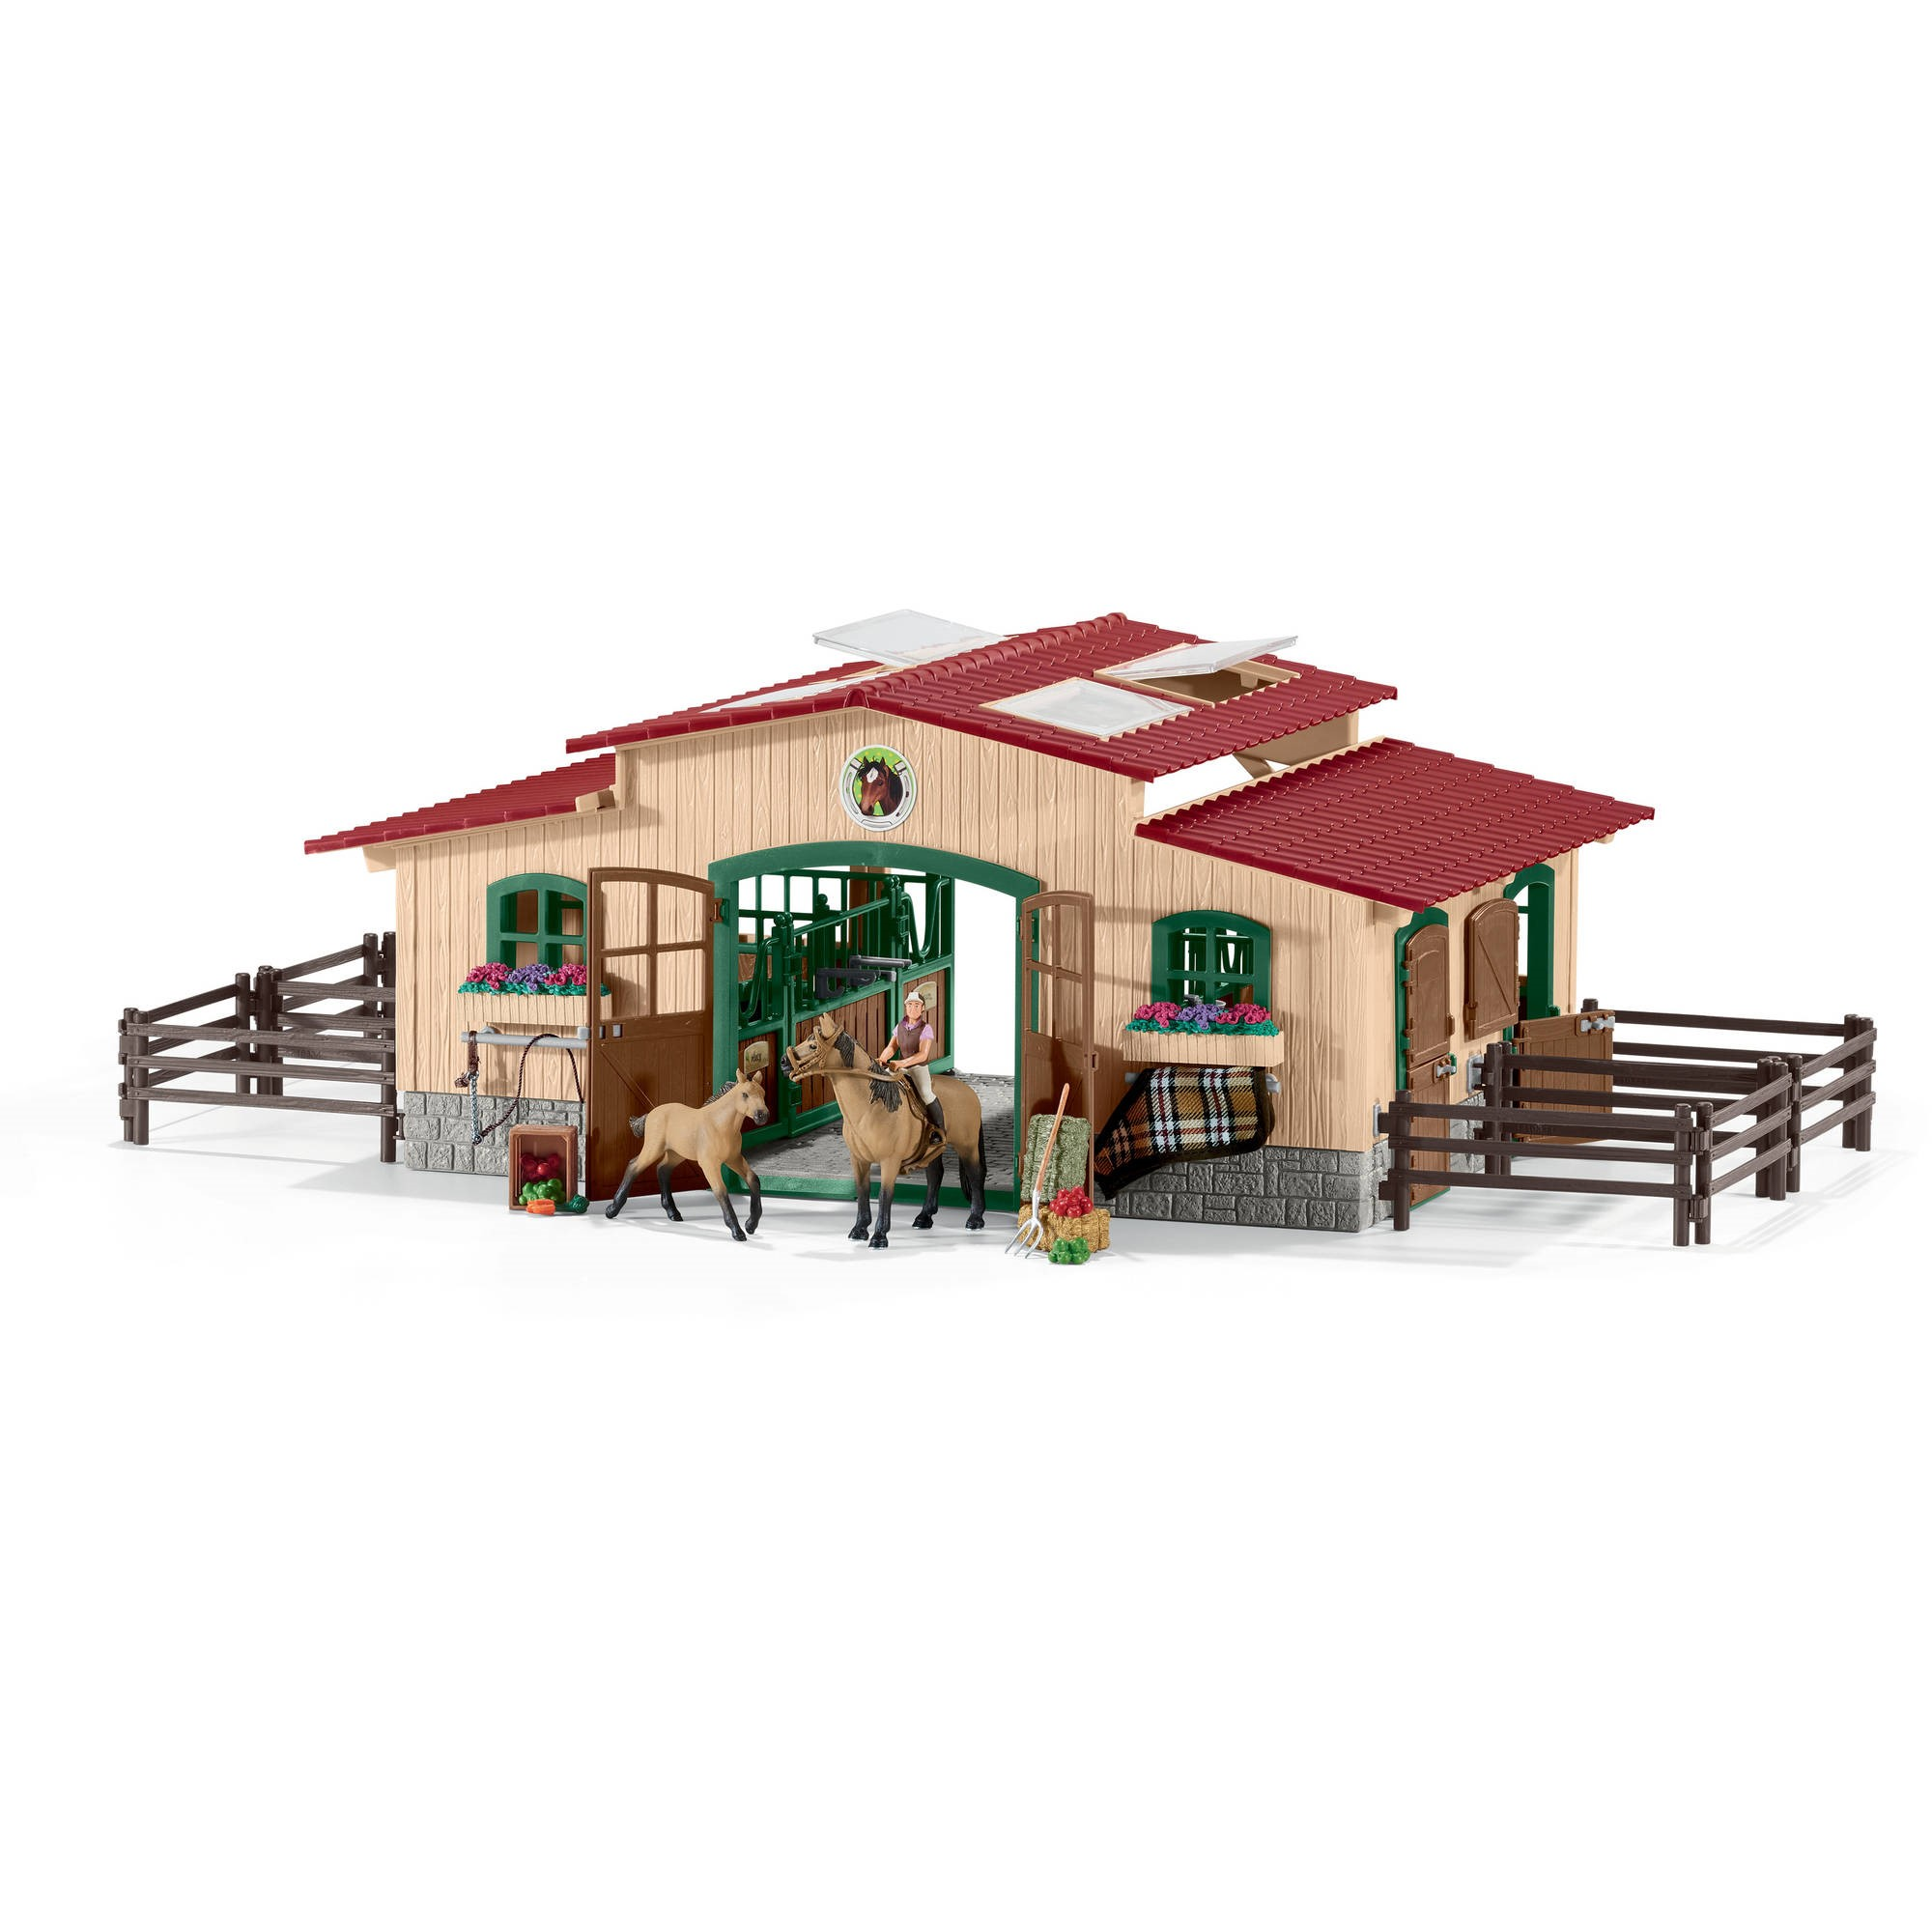 Stable with horses and accessories (brown stable)